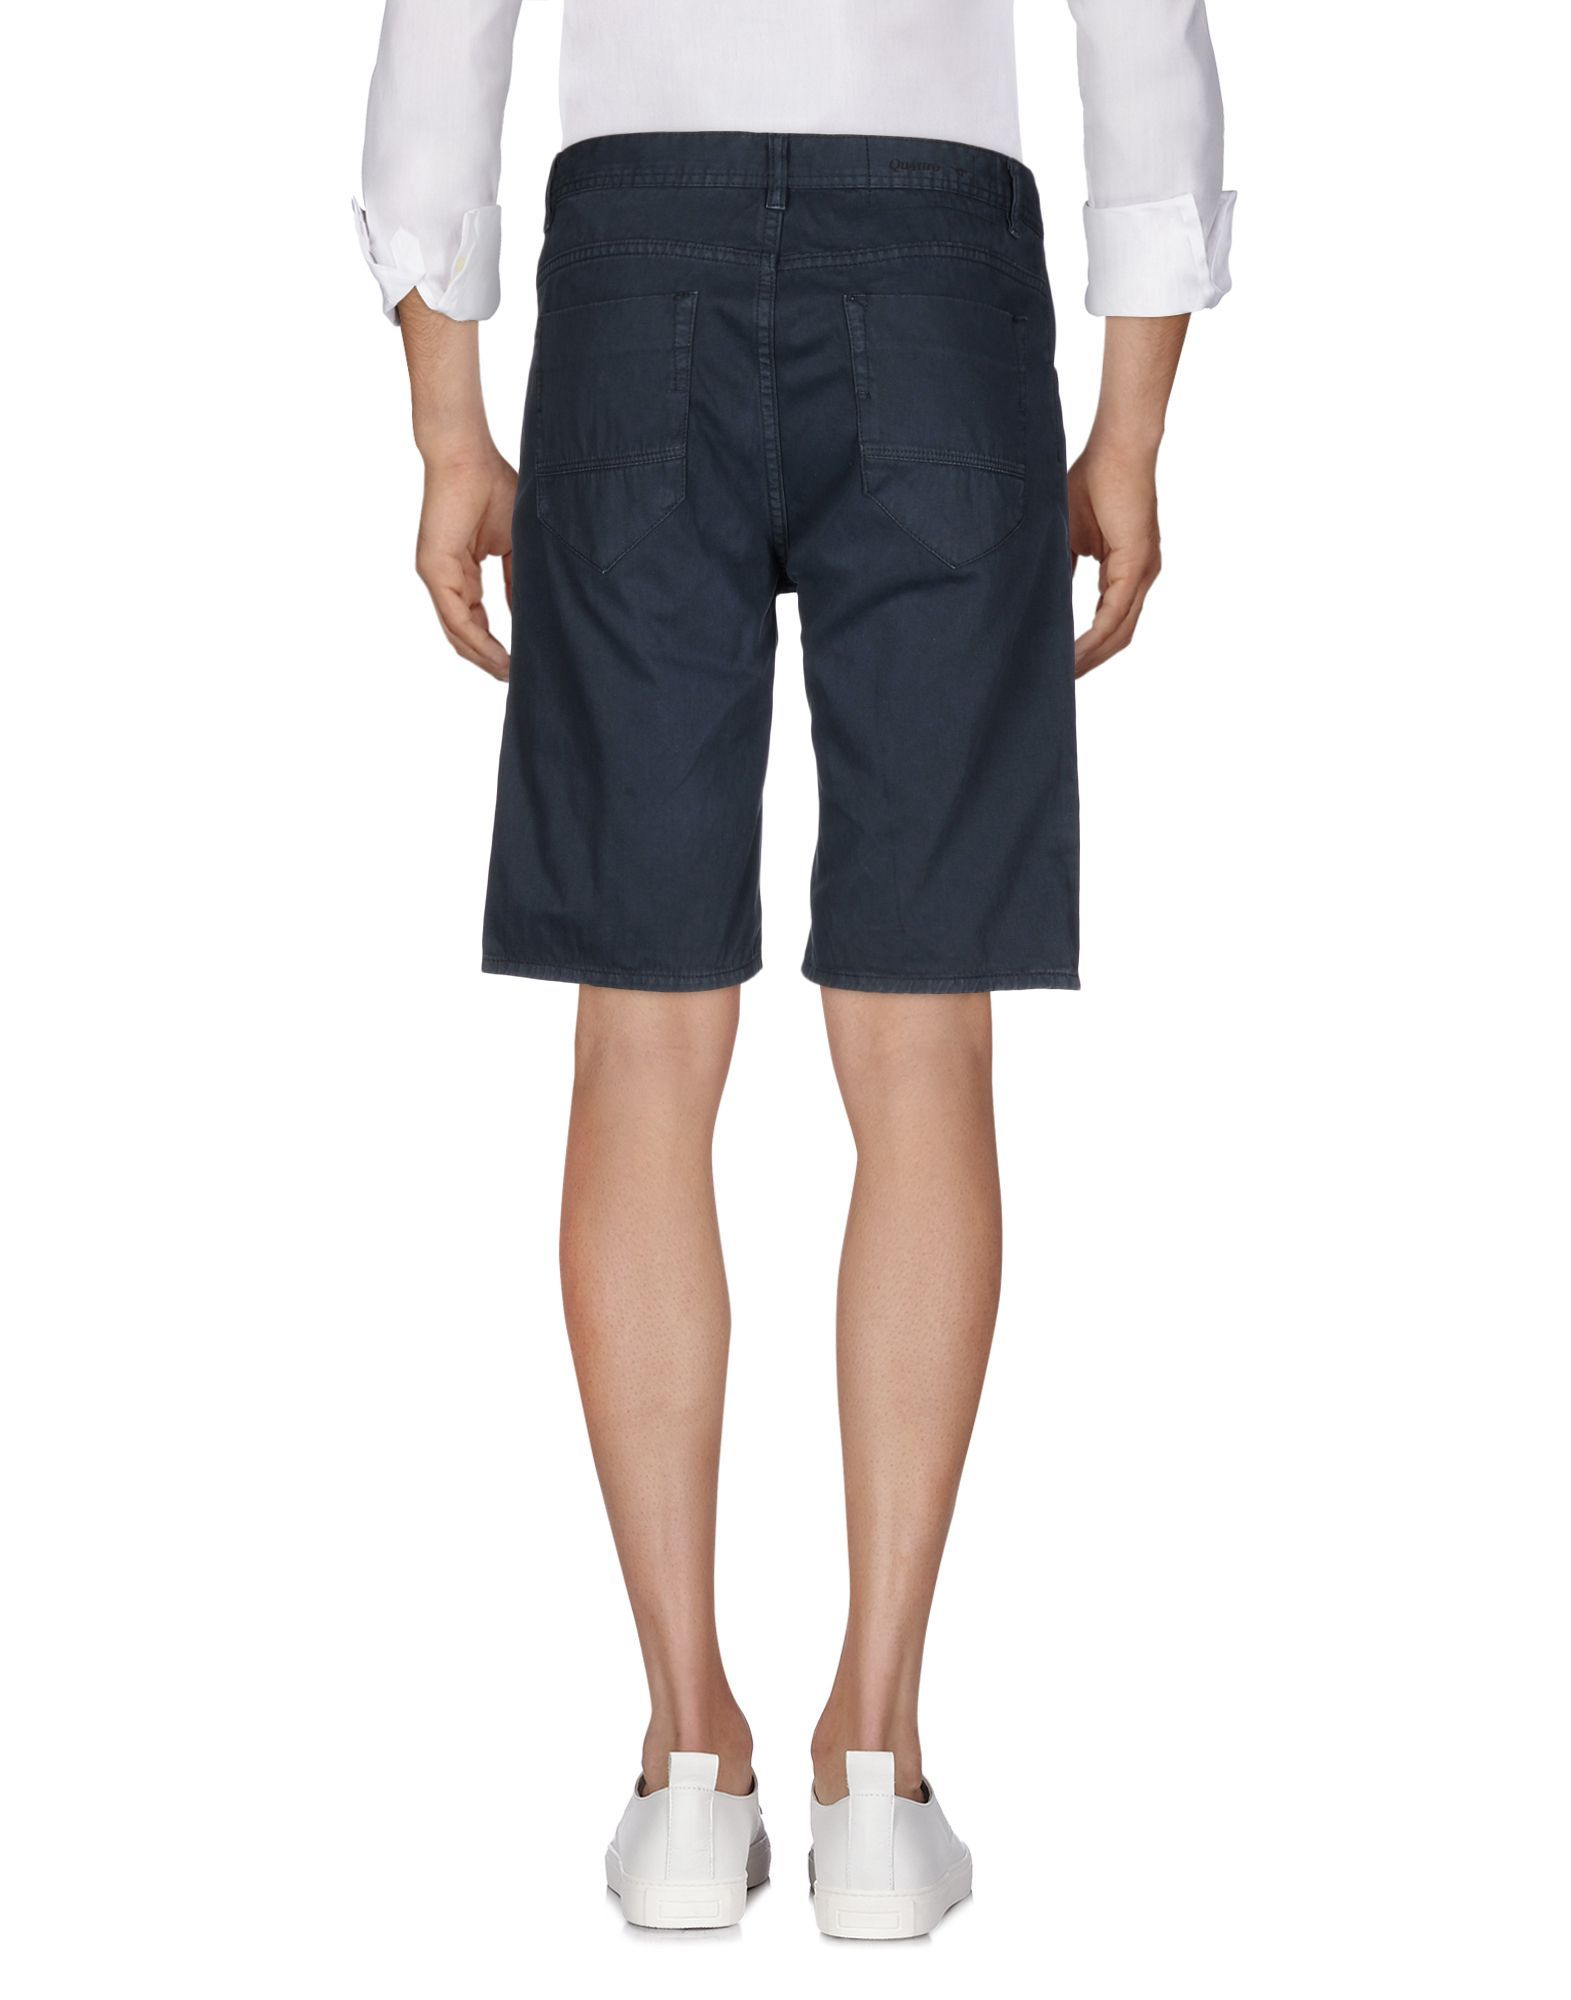 Steel grey pure cotton trousers